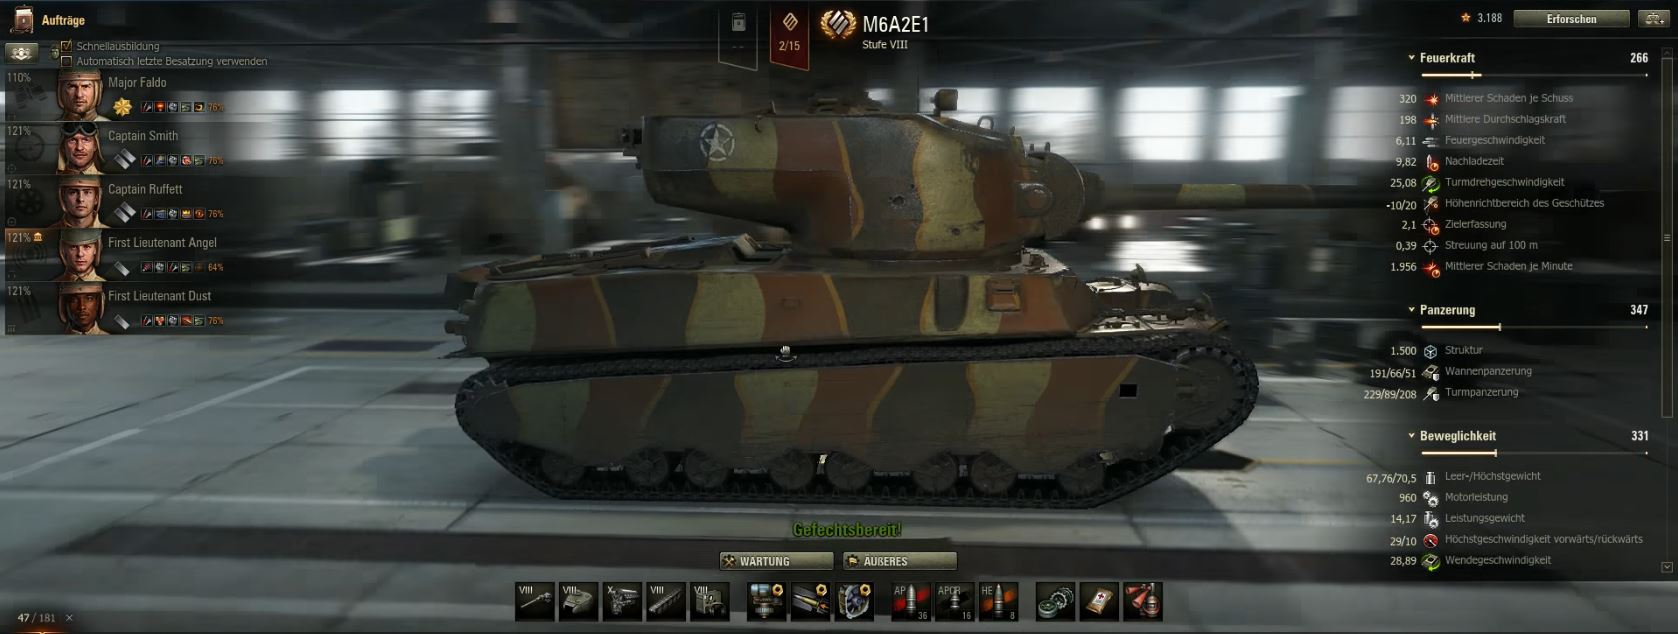 world of tanks M6A2E1 01